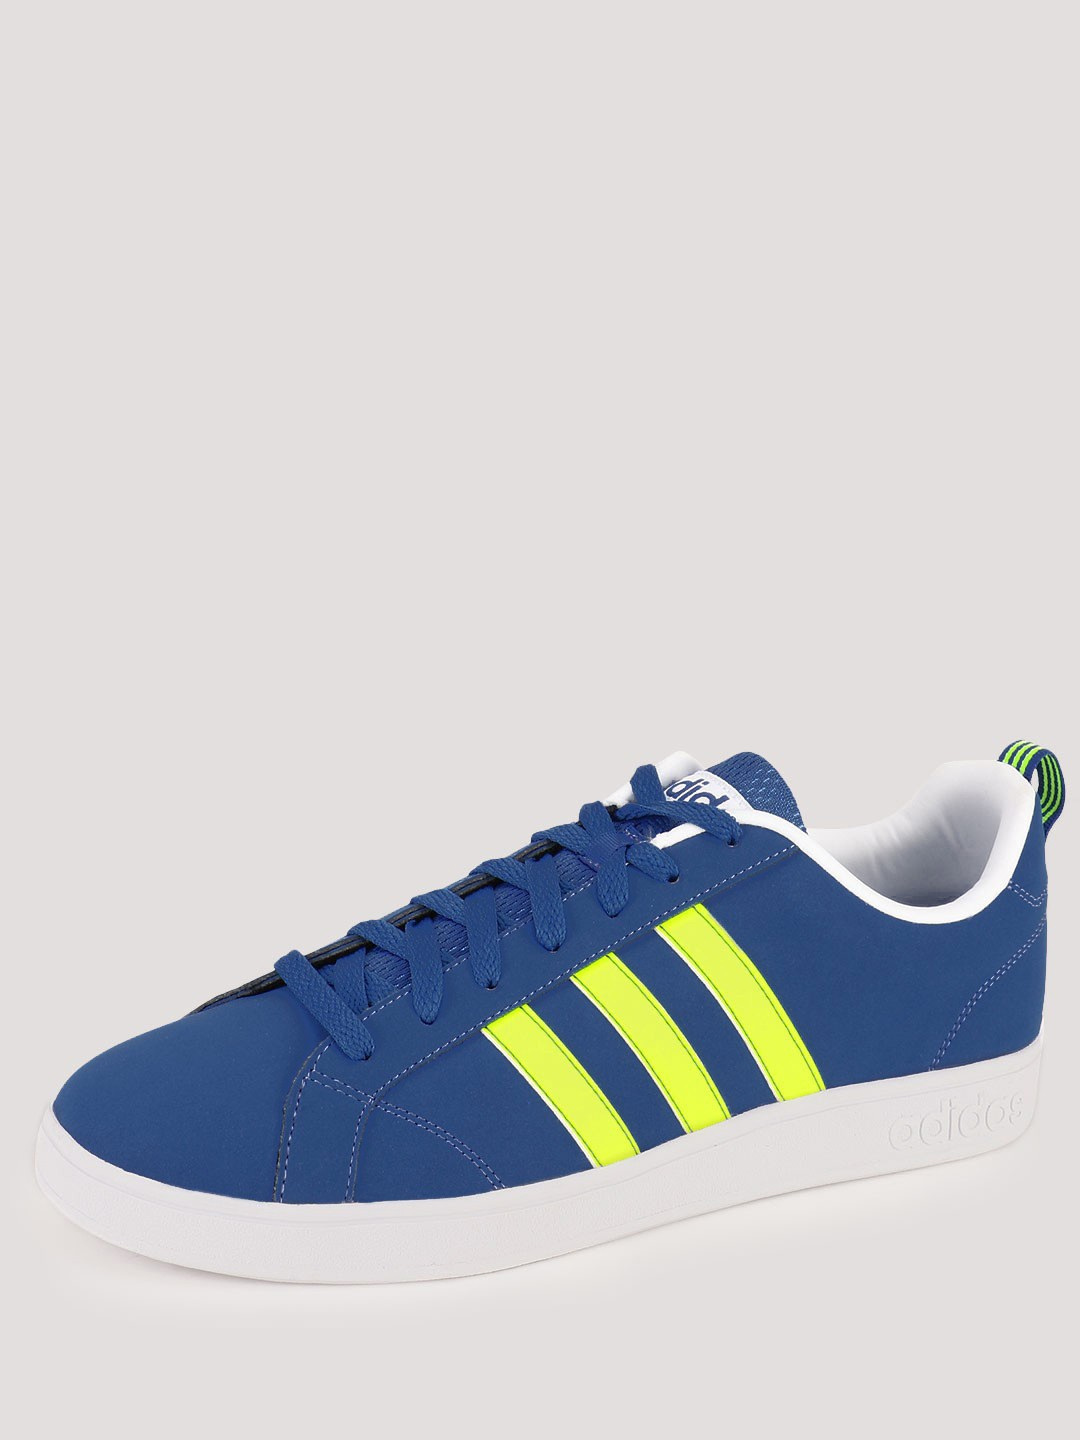 Adidas Neo VS ADVANTAGE Sneakers For MenBlue